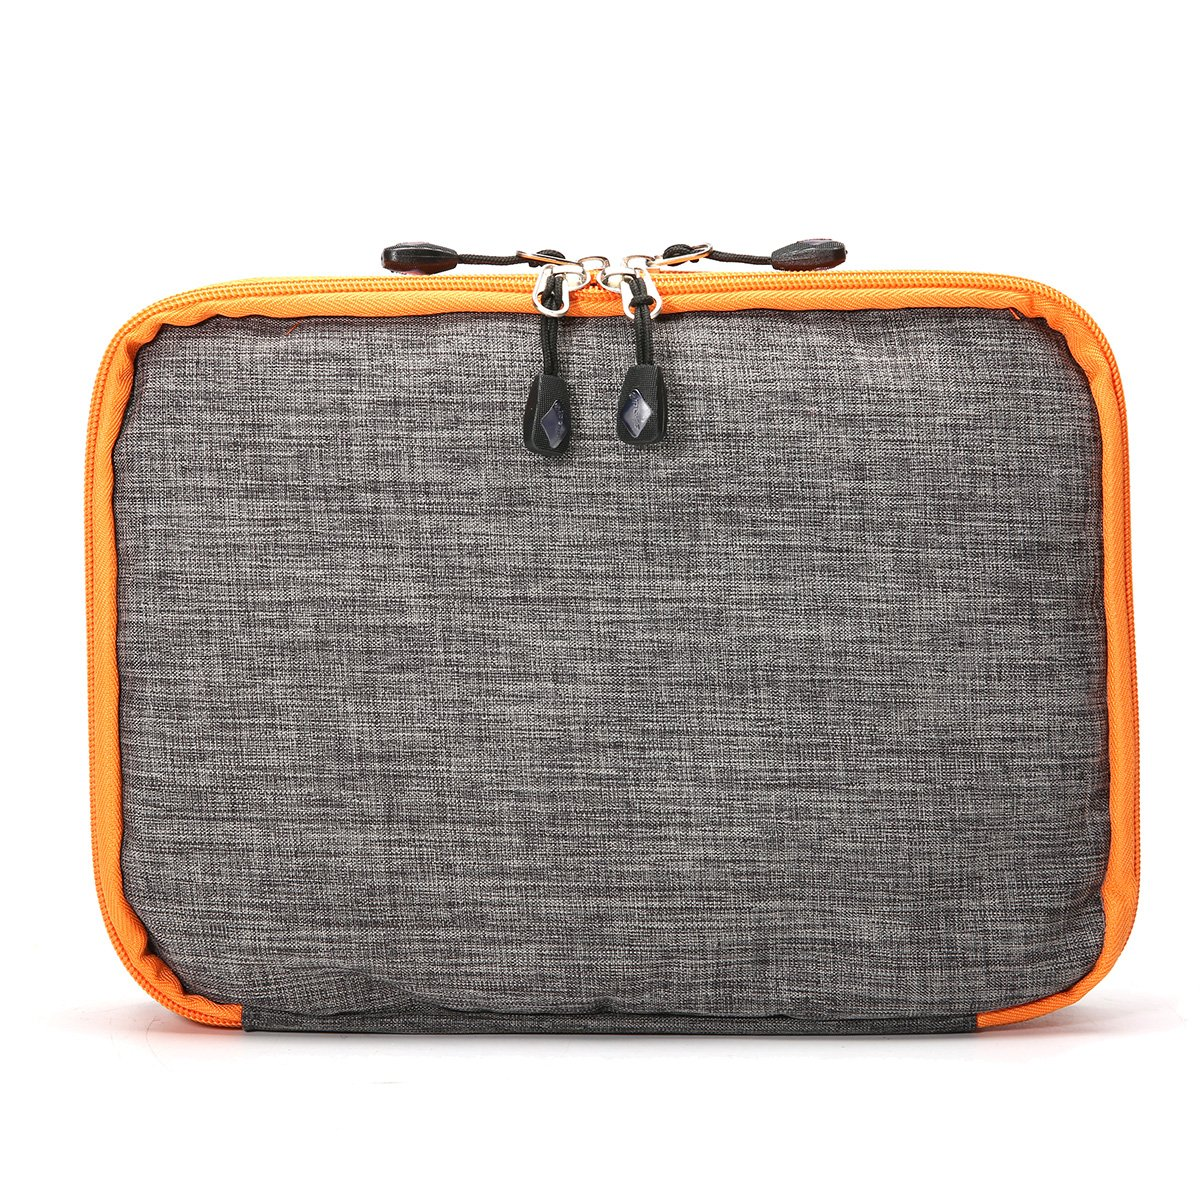 Caveen Organizer Bag Waterproof Electronics Travel Organizer Electronics Accessories Cases For Various USB, Phone, Charge and Cable Universal Double Layer Travel Bag, Orange